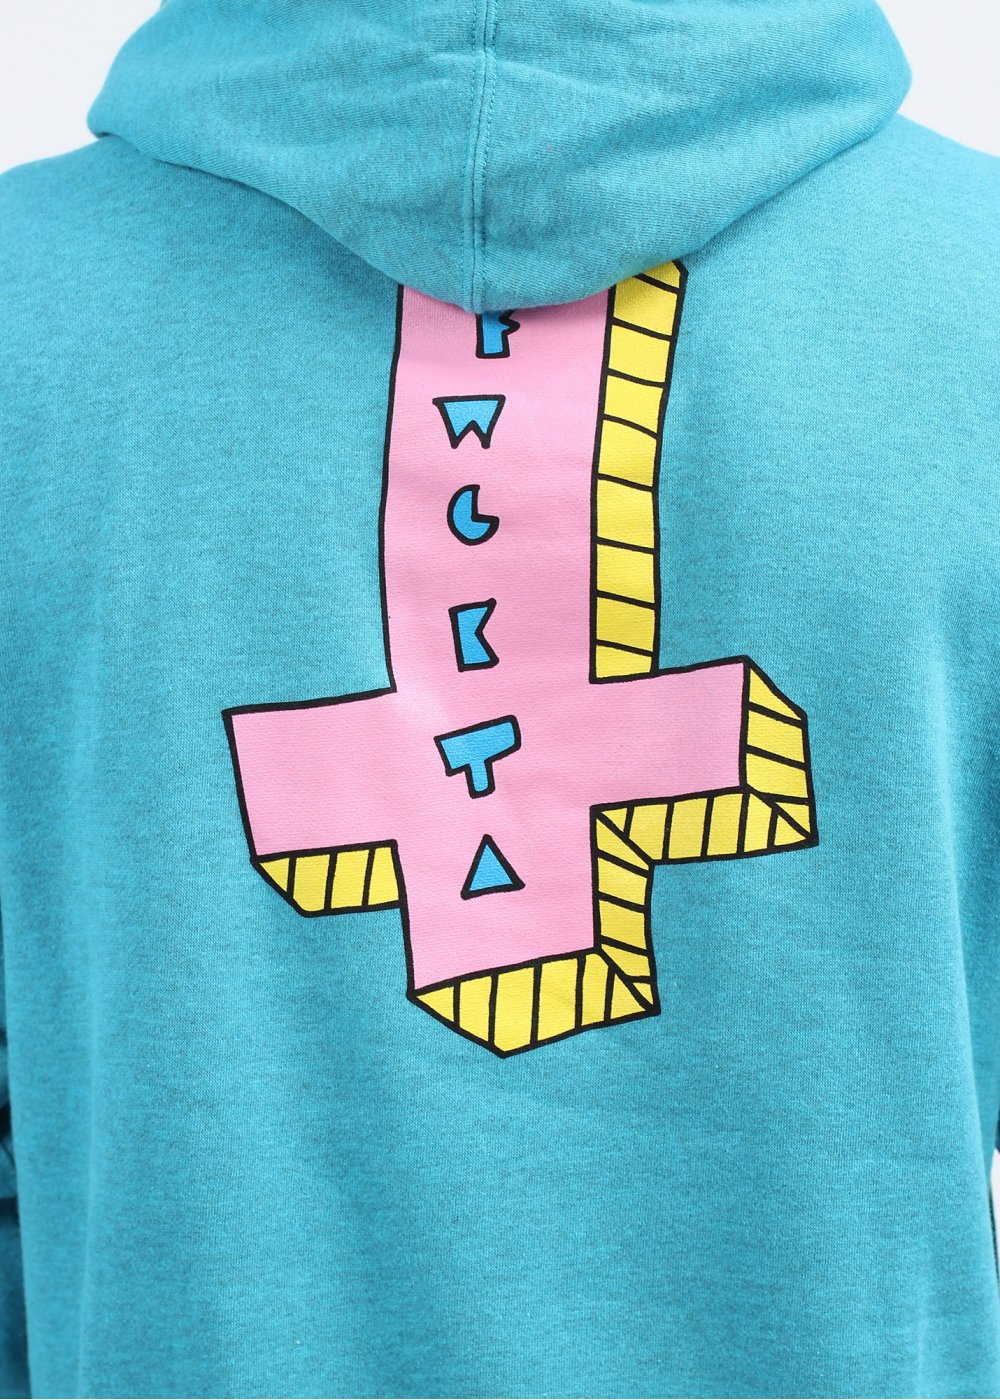 Ofwgkta Cross Drawing 1379929405-28926200.jpg